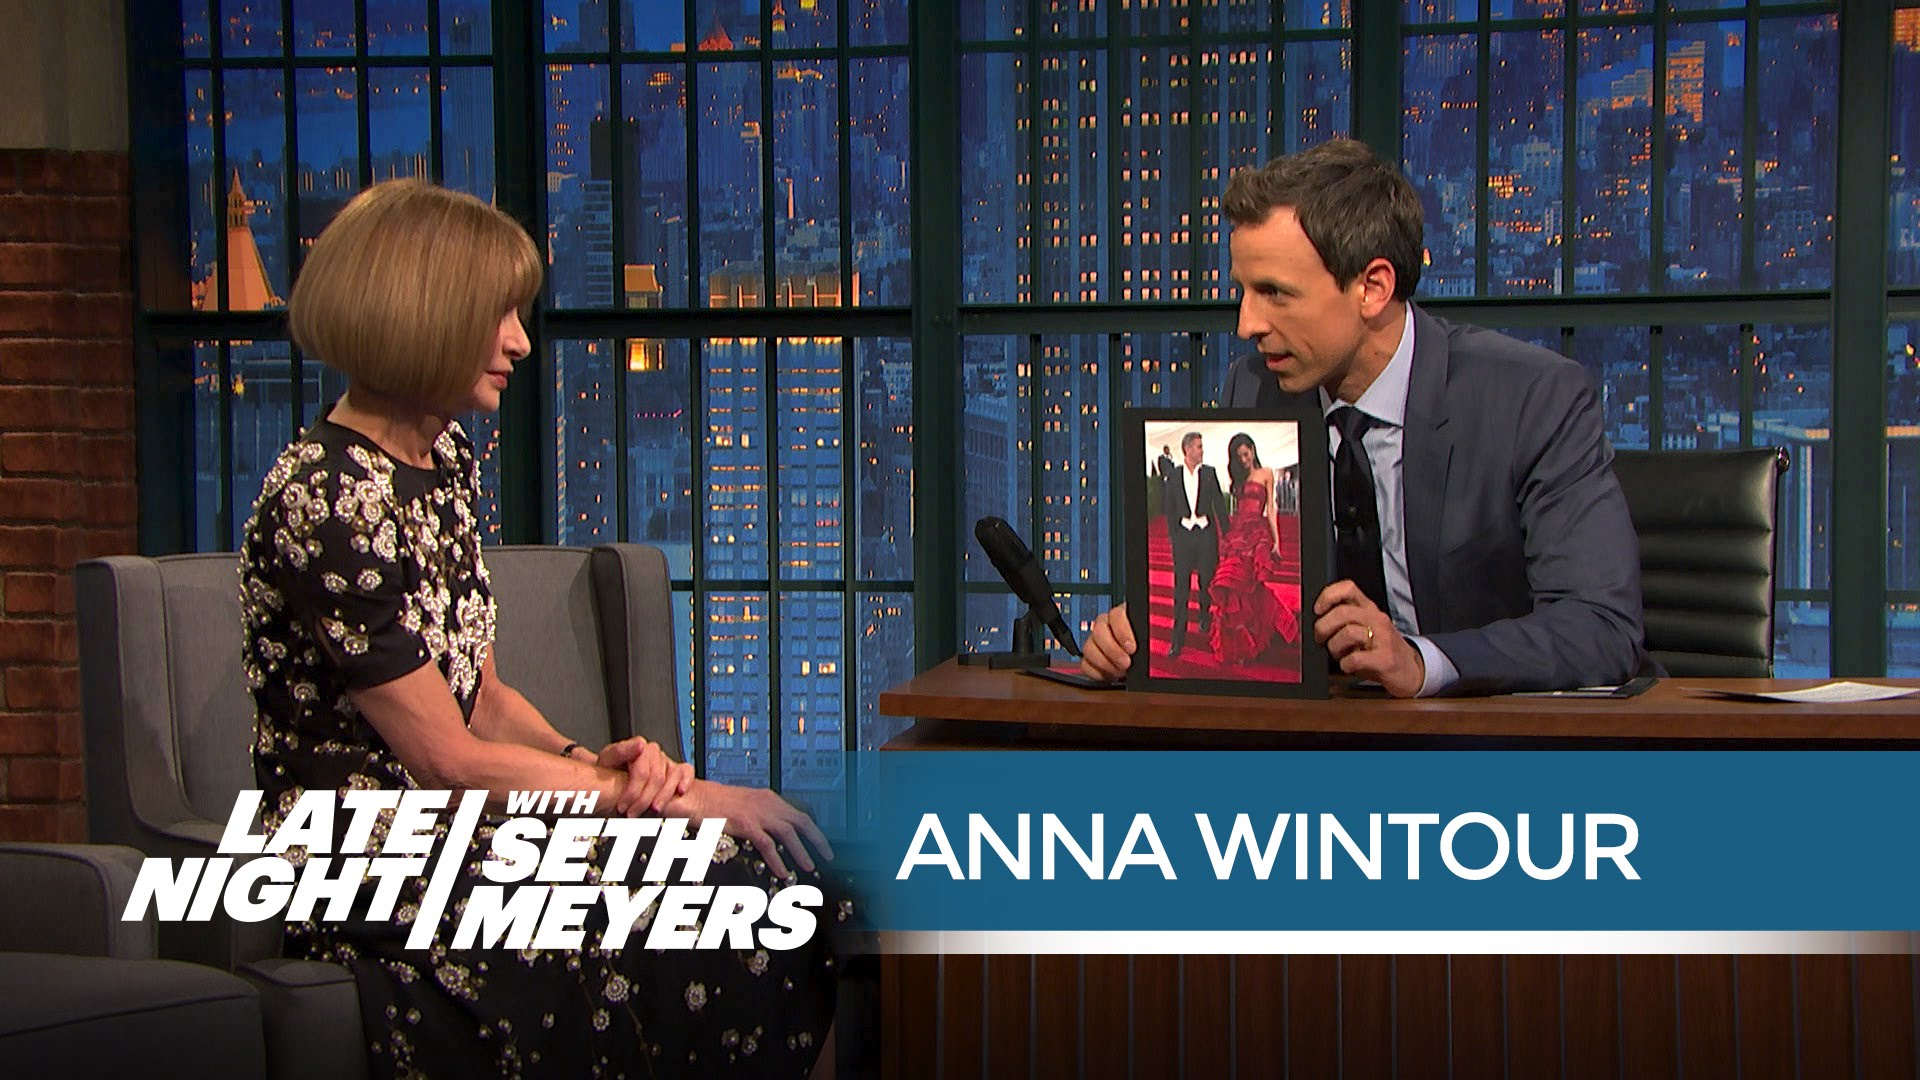 Anna Wintour on Late Night With Seth Myers | Hip Hop News, Music and Culture | The Source